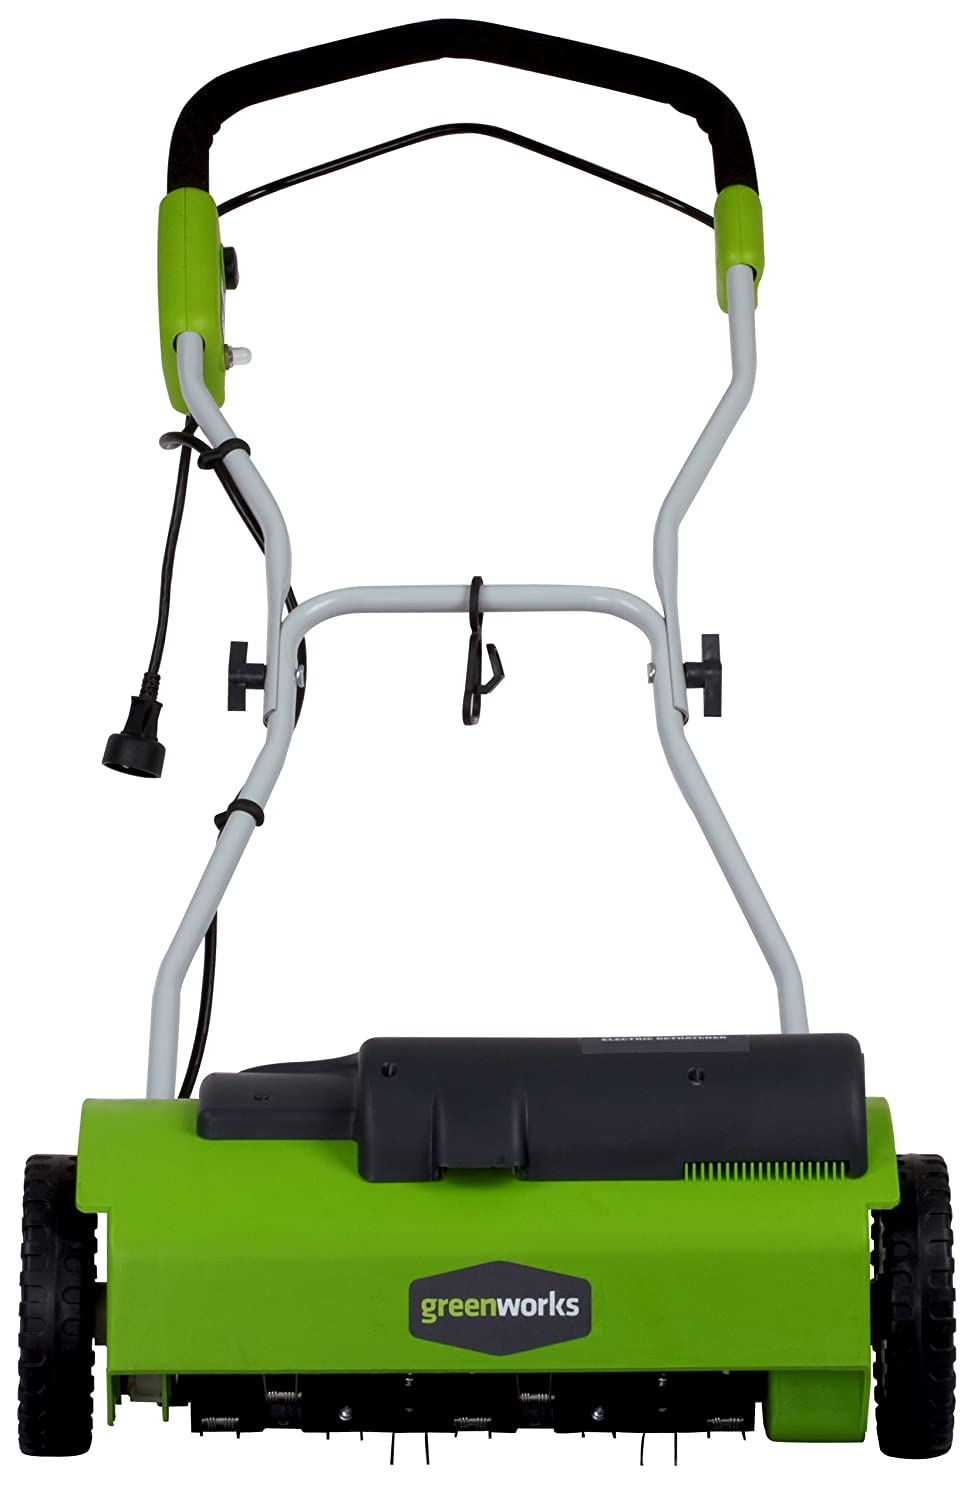 GreenWorks 27022 10-amp 14-inch Corded Dethatcher Review